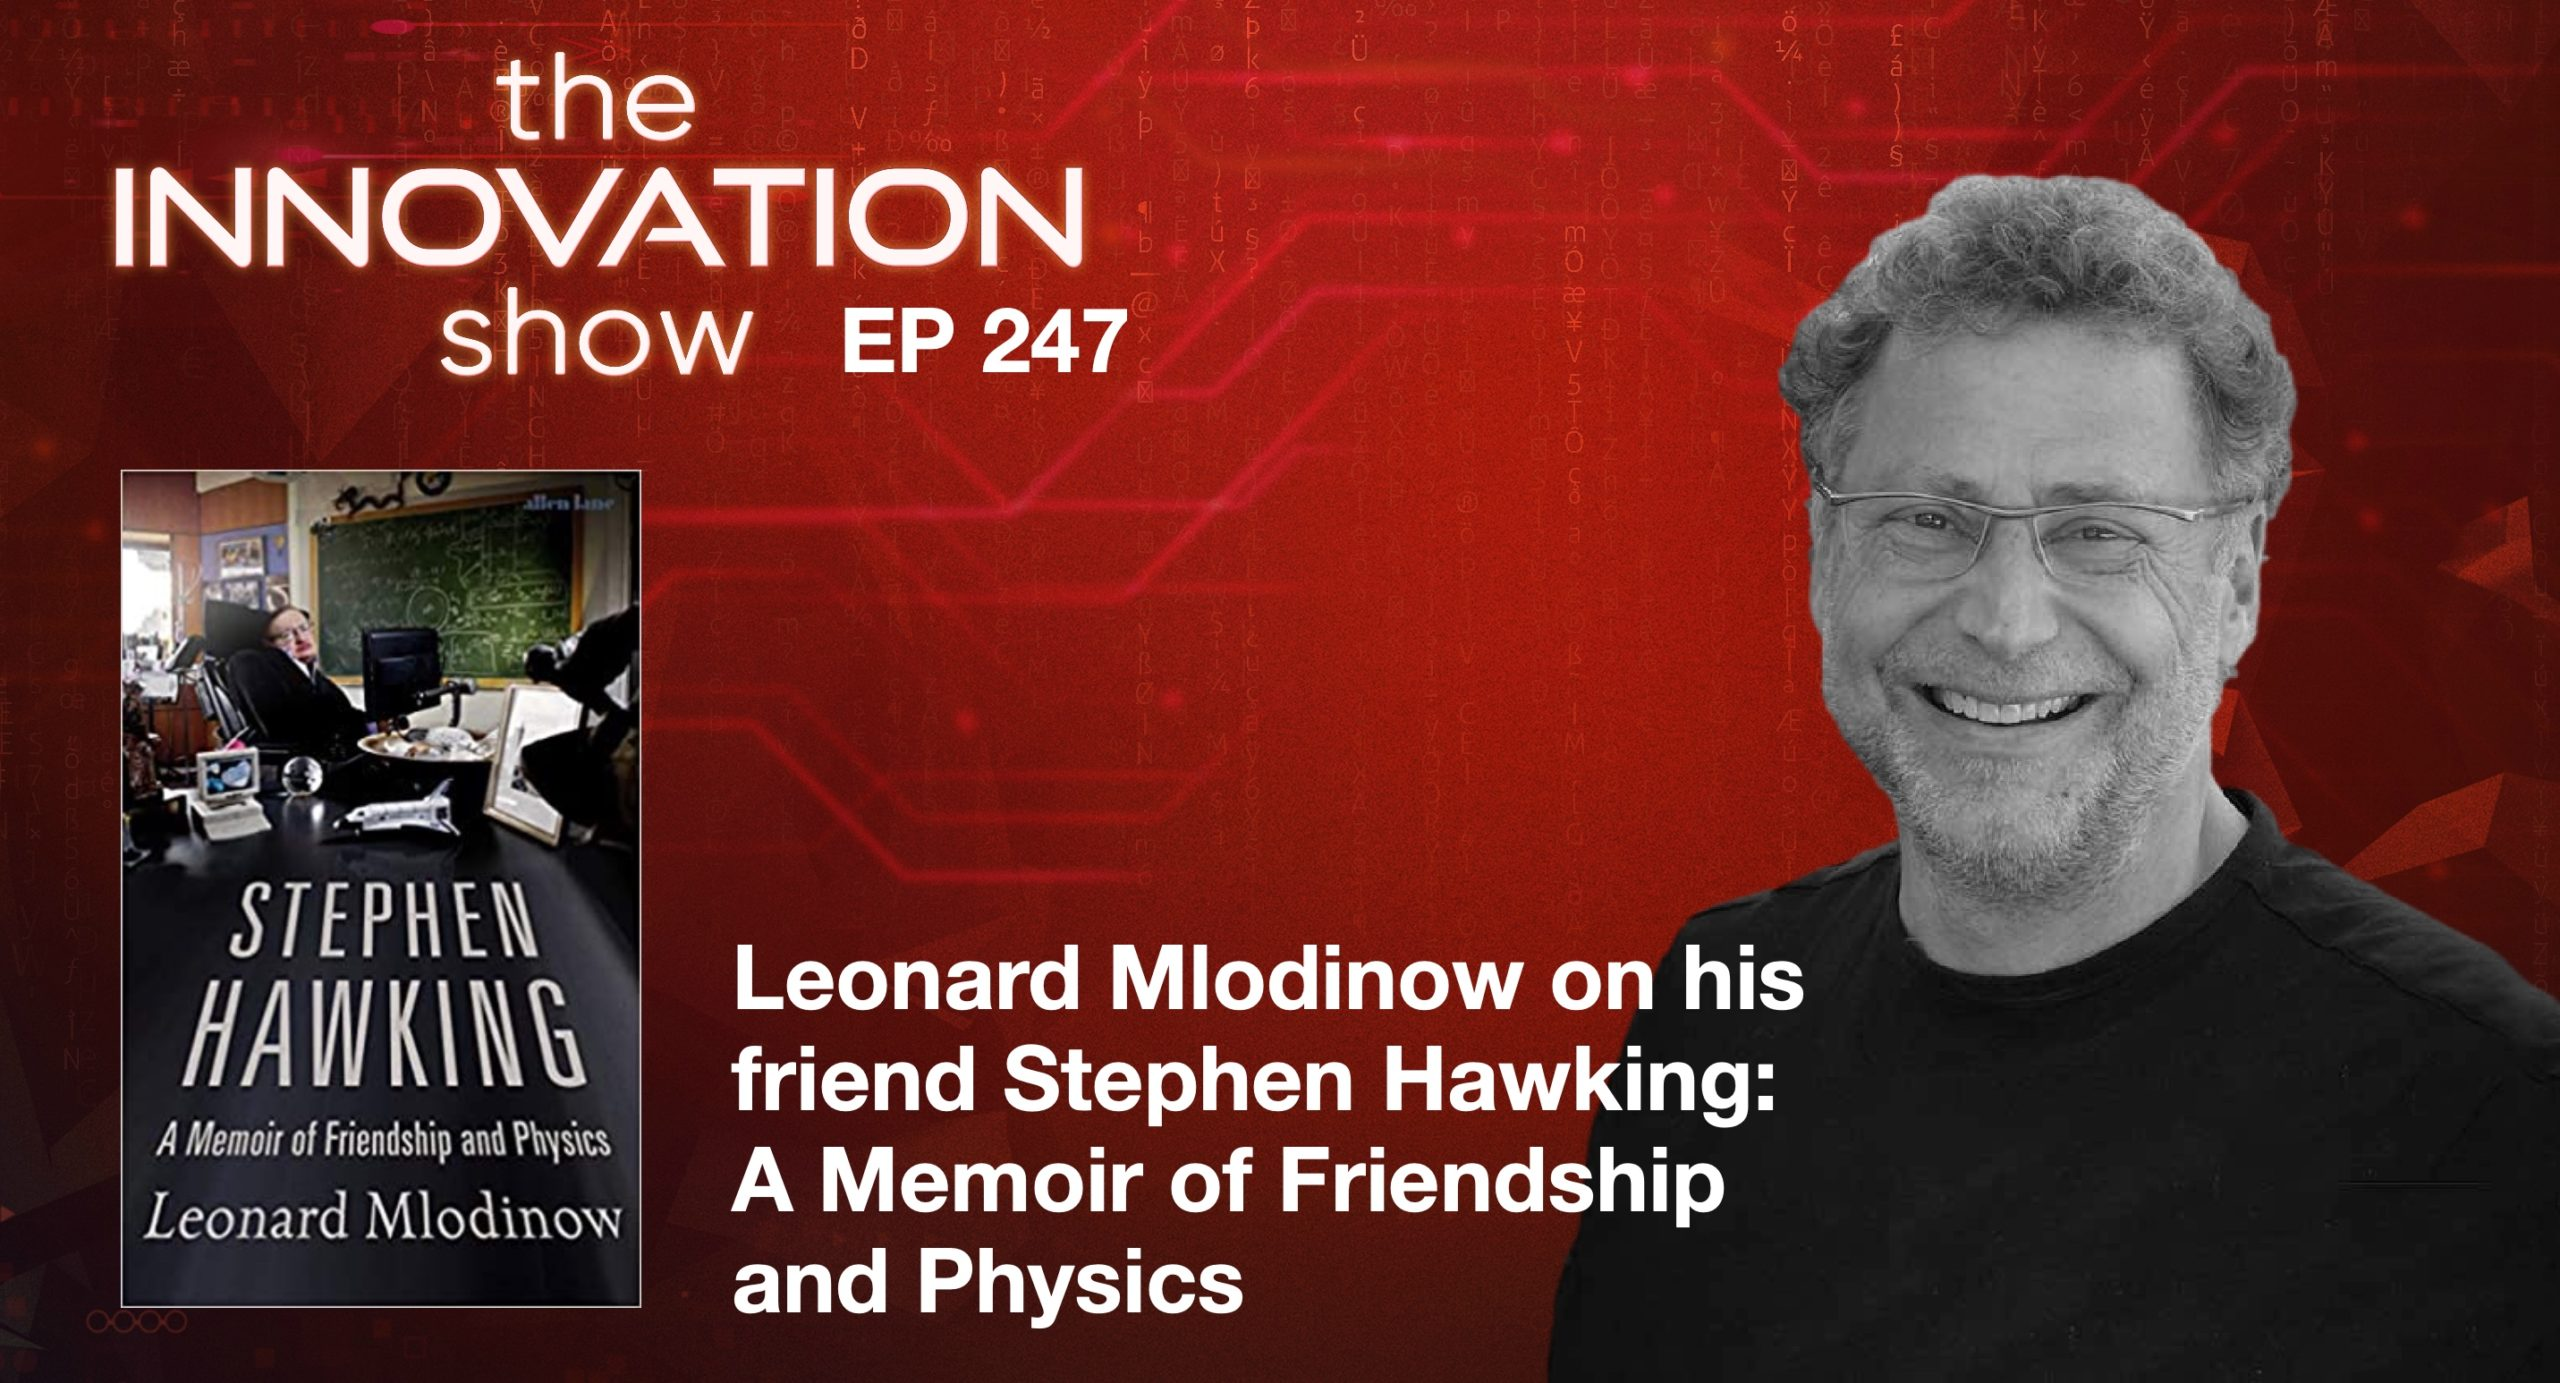 Leonard Mlodinow Innovation Show